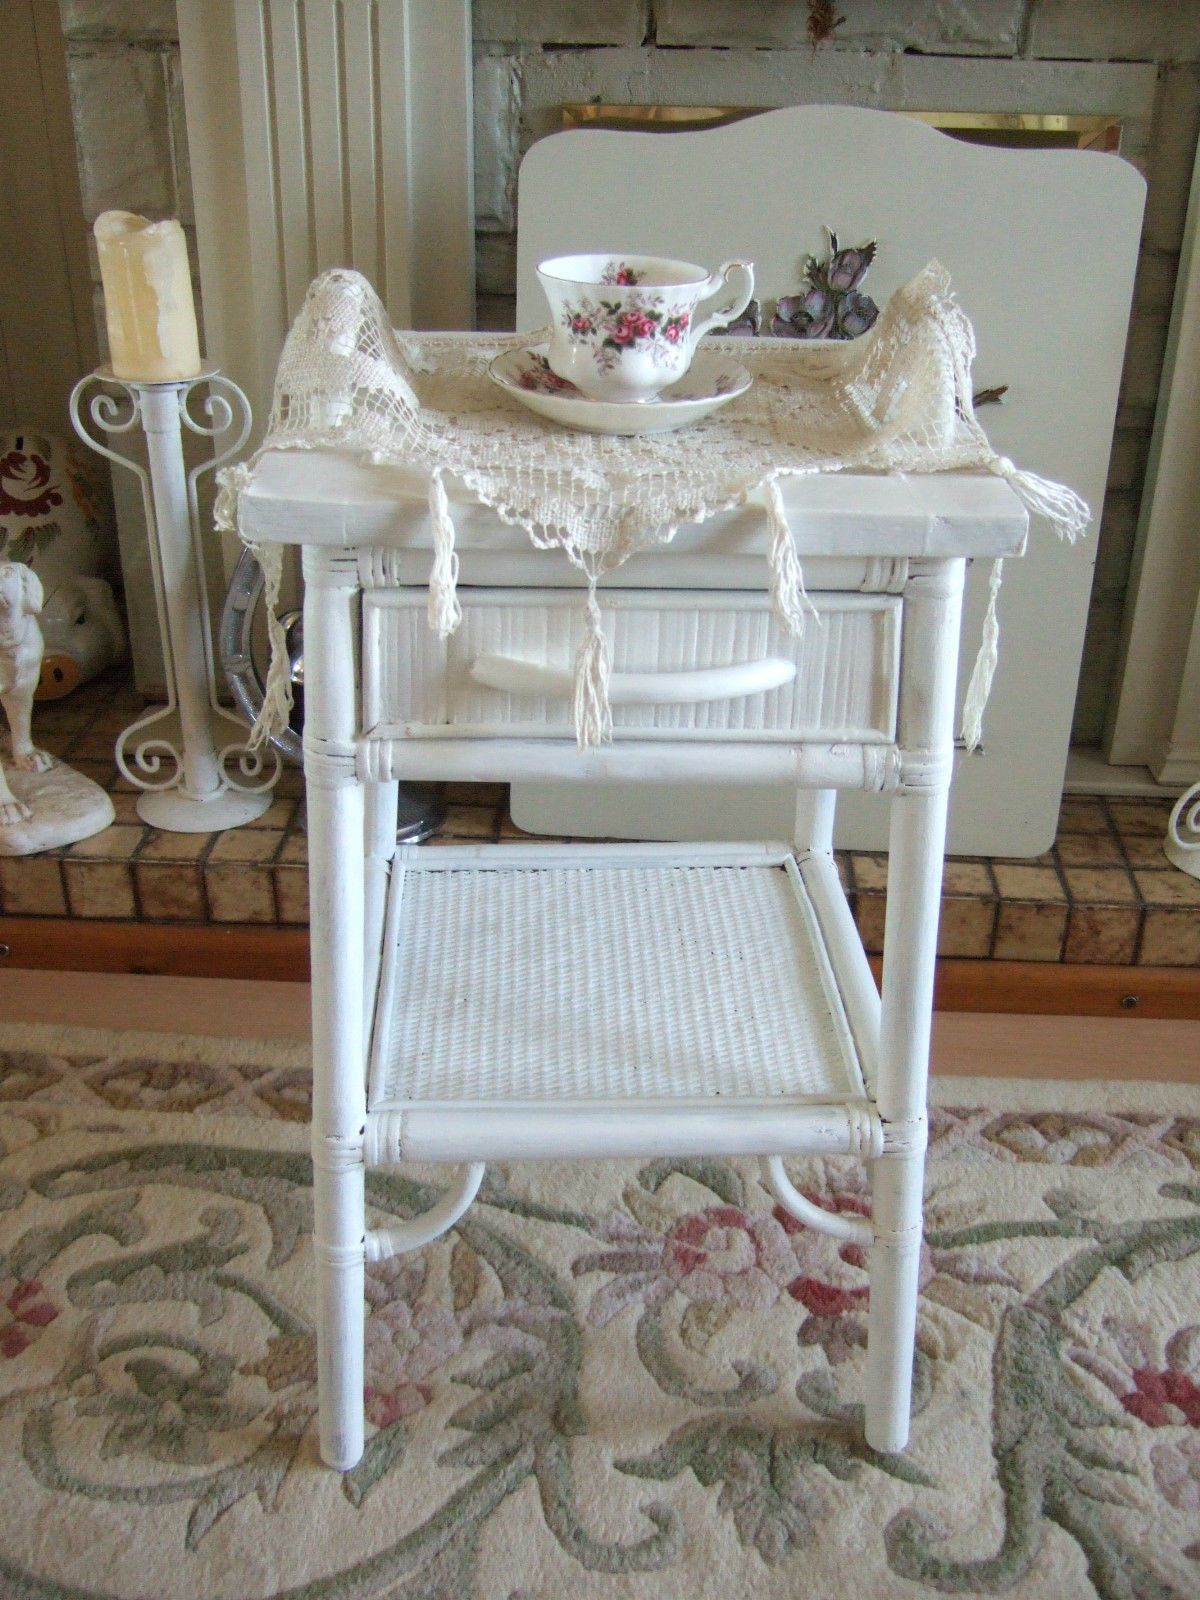 UNUSUAL VINTAGE WHITE WICKER SIDE TABLE WITH DRAWER & LIFT ...